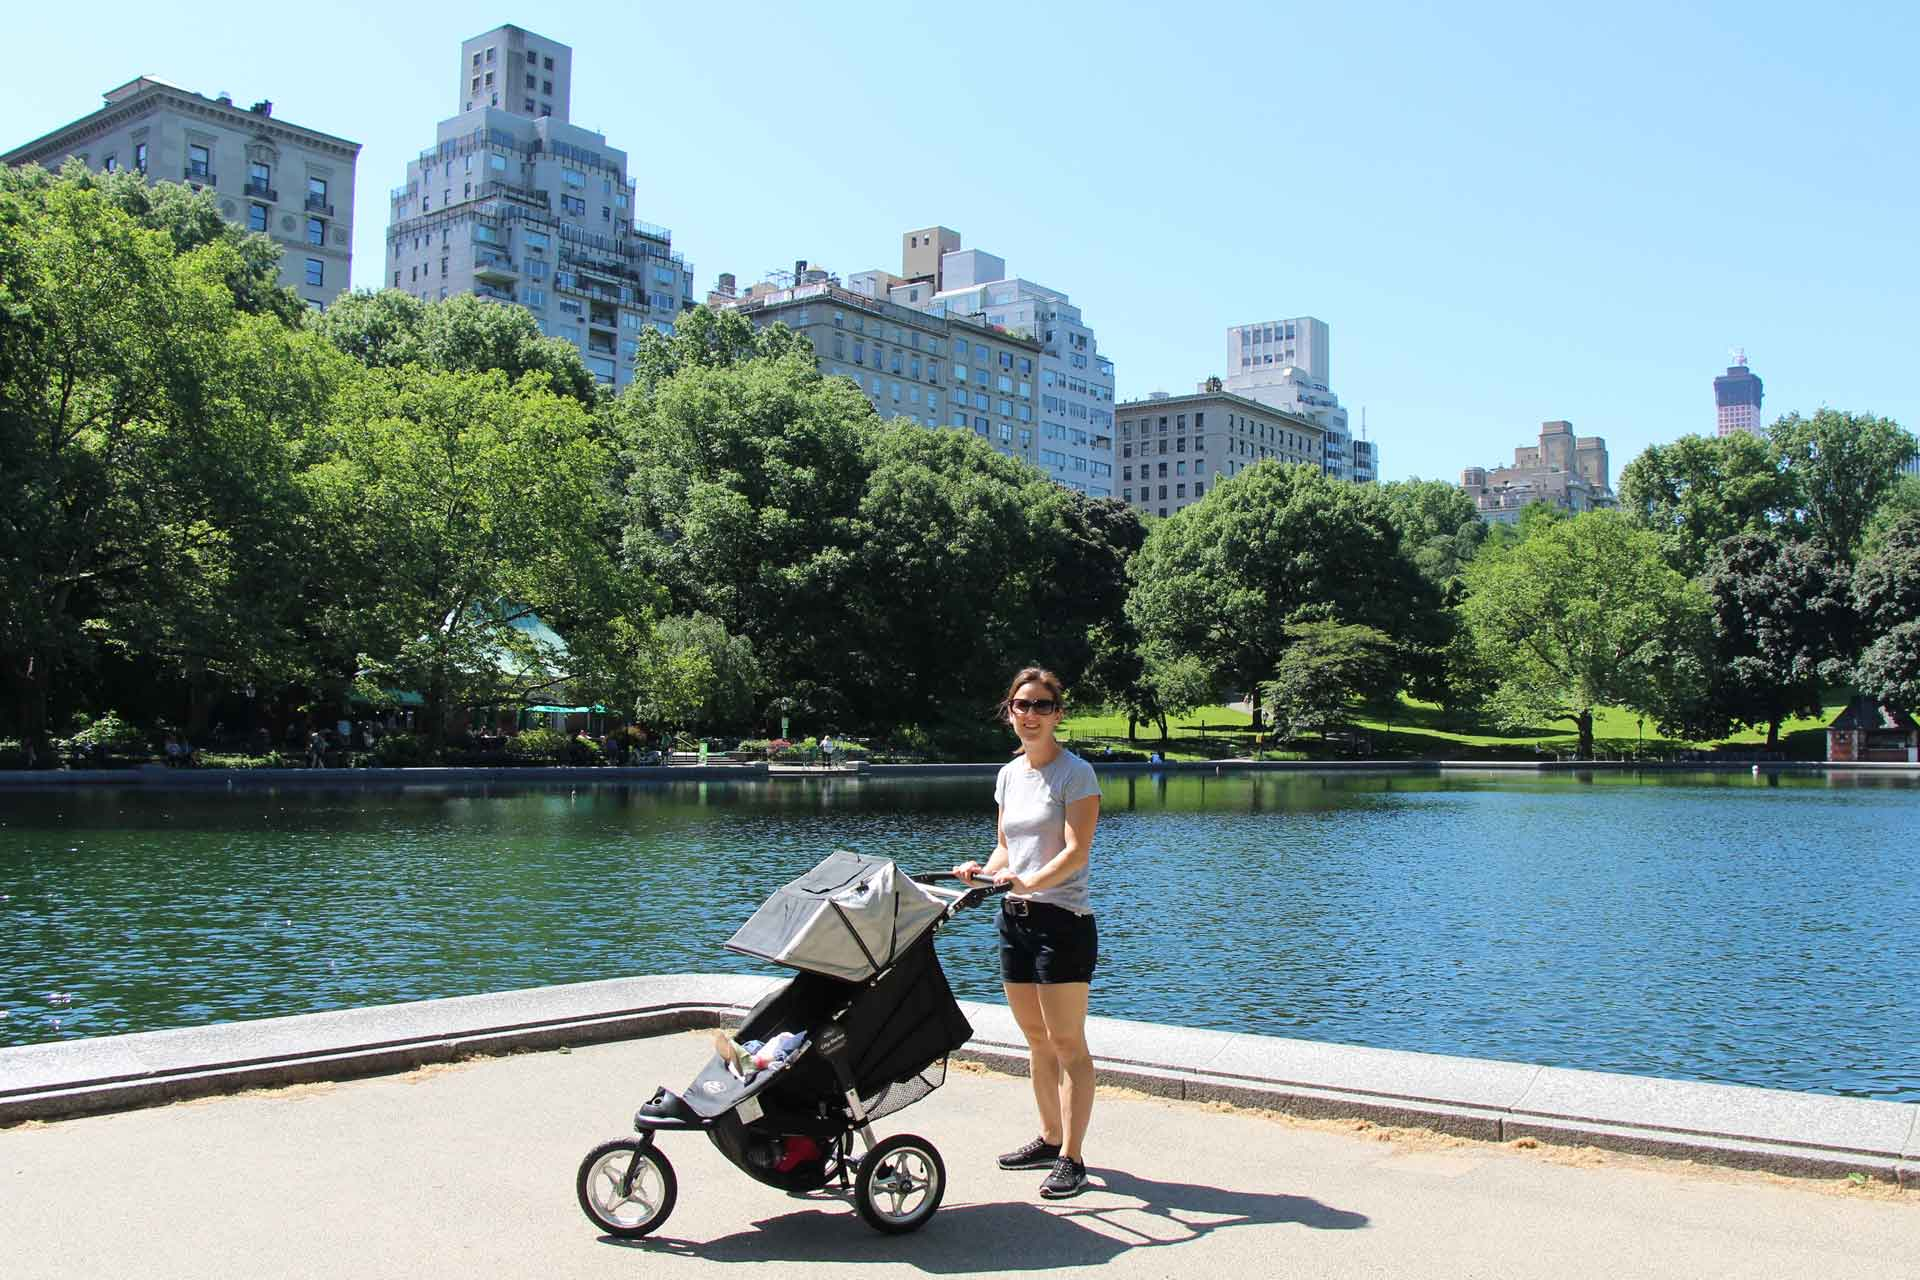 Stroller for travel with a baby